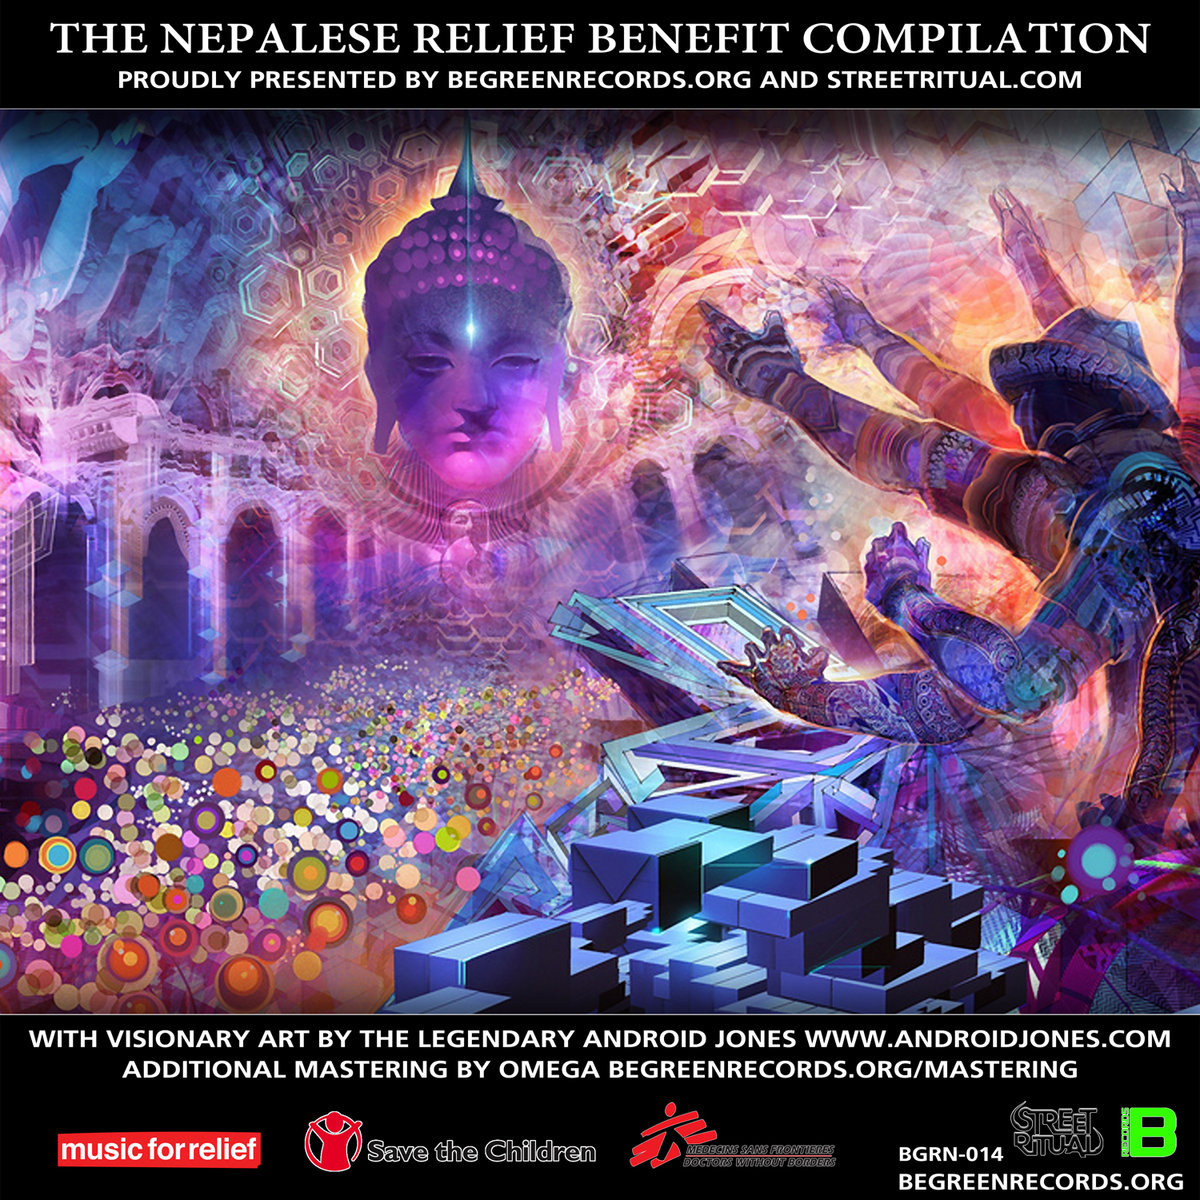 Rhythmstar feat. Rama - Drakones Indikoi @ 'Various Artists - The Nepalese Relief Benefit Compilation' album (bass, electronic)